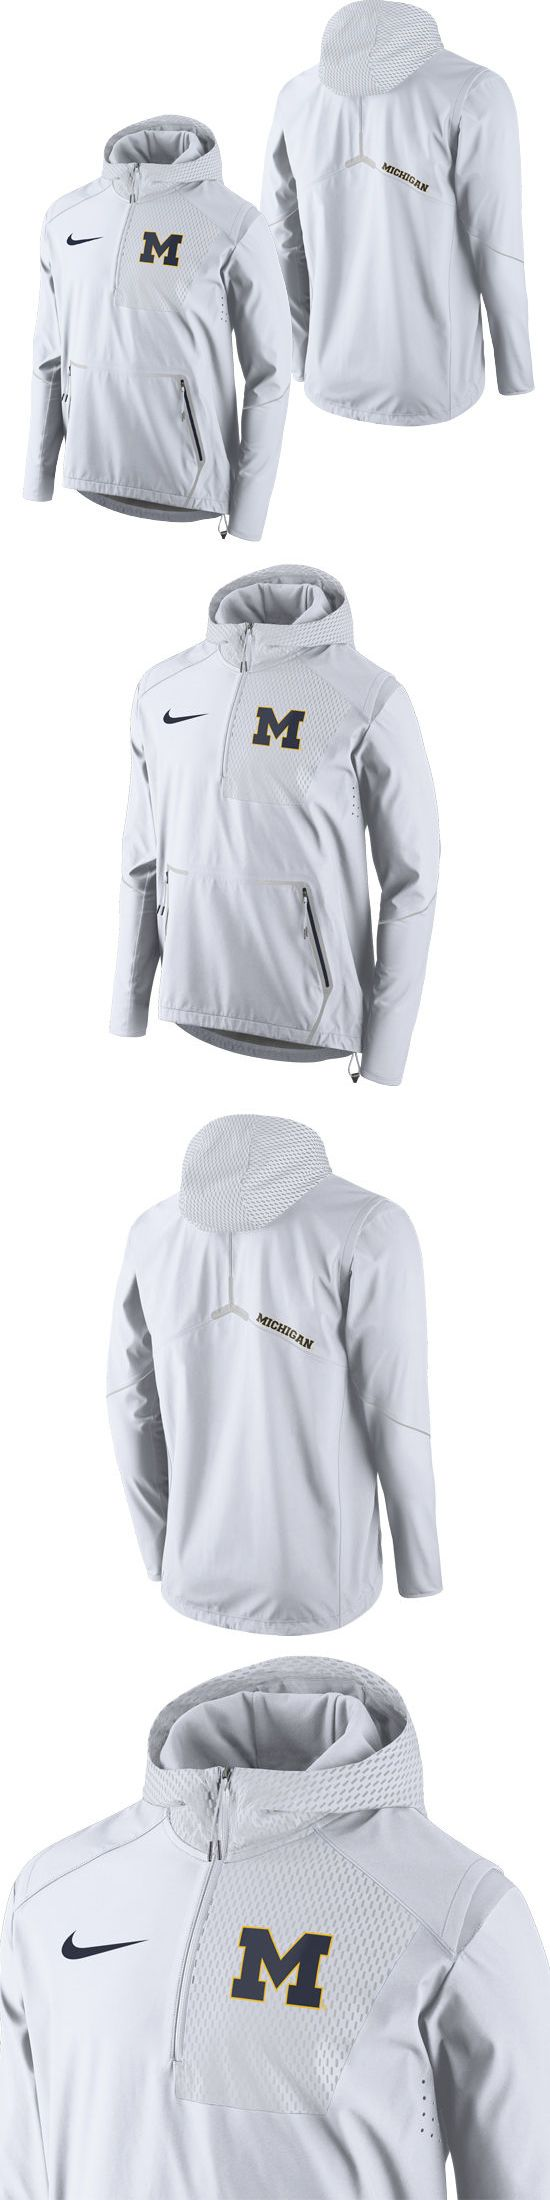 College-NCAA 24541: Nike University Of Michigan White Speed Fly Rush Flash Half Zip Jacket Nwt New! -> BUY IT NOW ONLY: $94.95 on eBay!